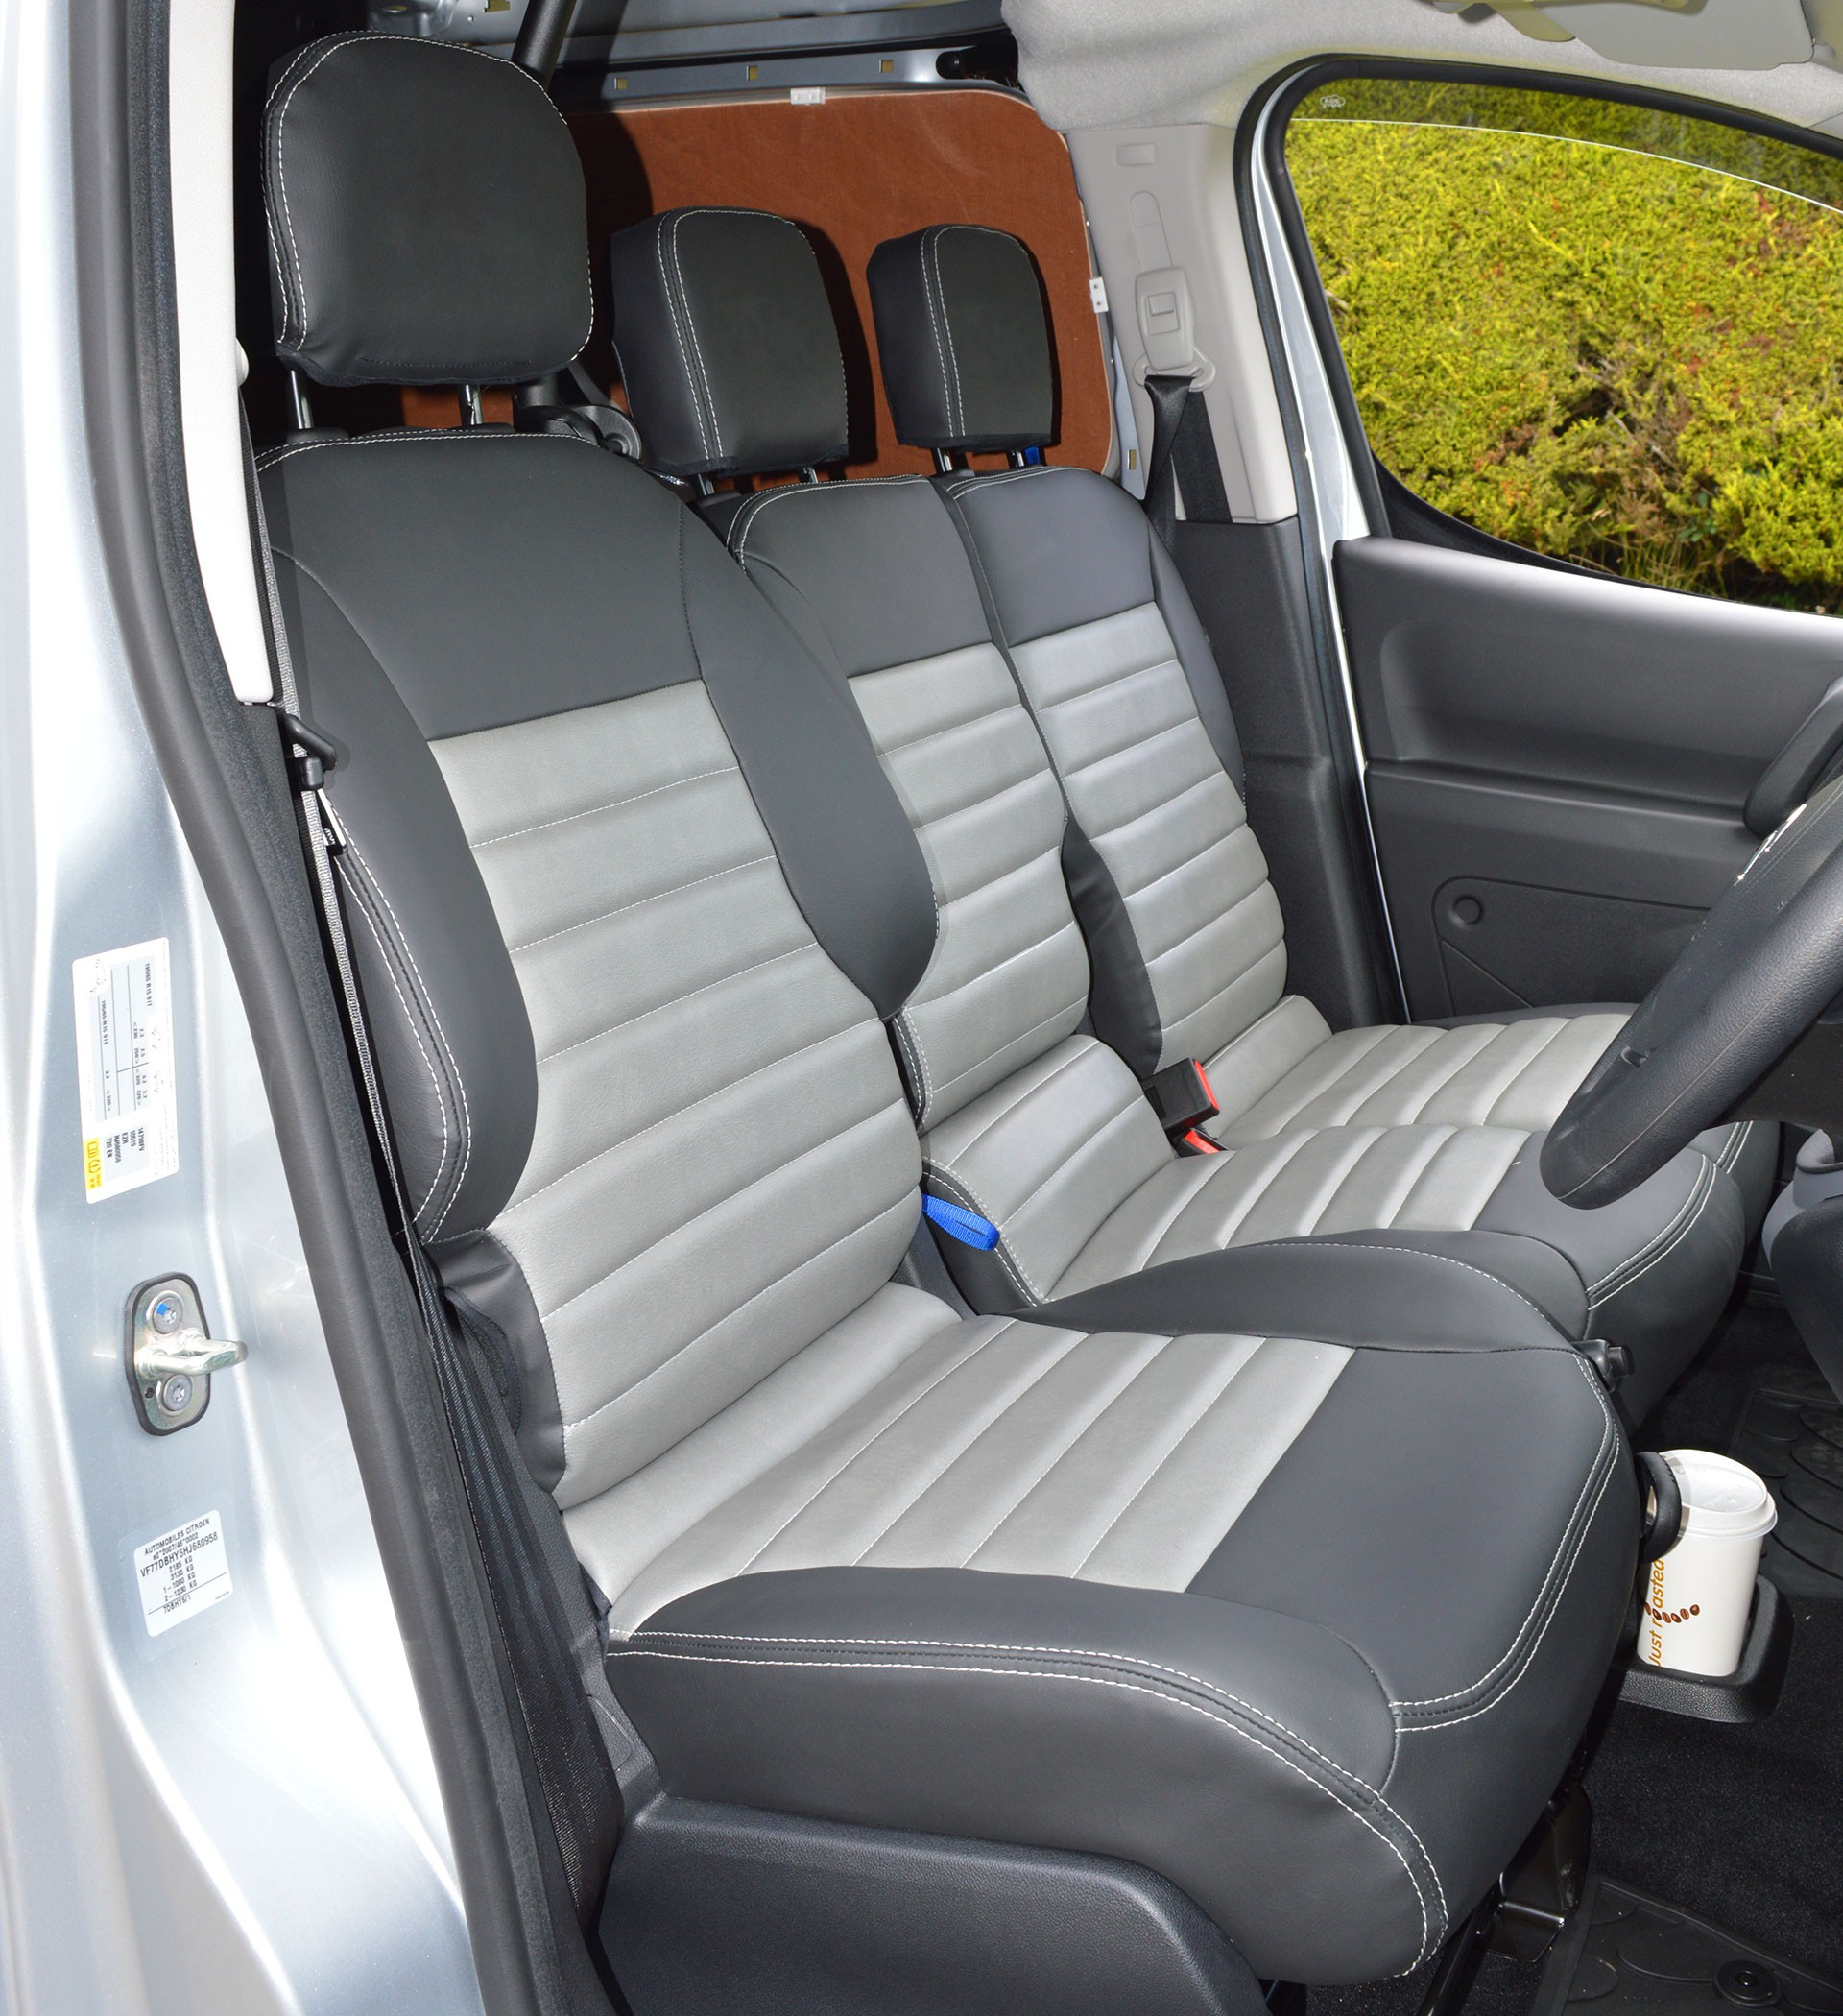 Citroen Berlingo Tailored Quilted Van Seat Covers